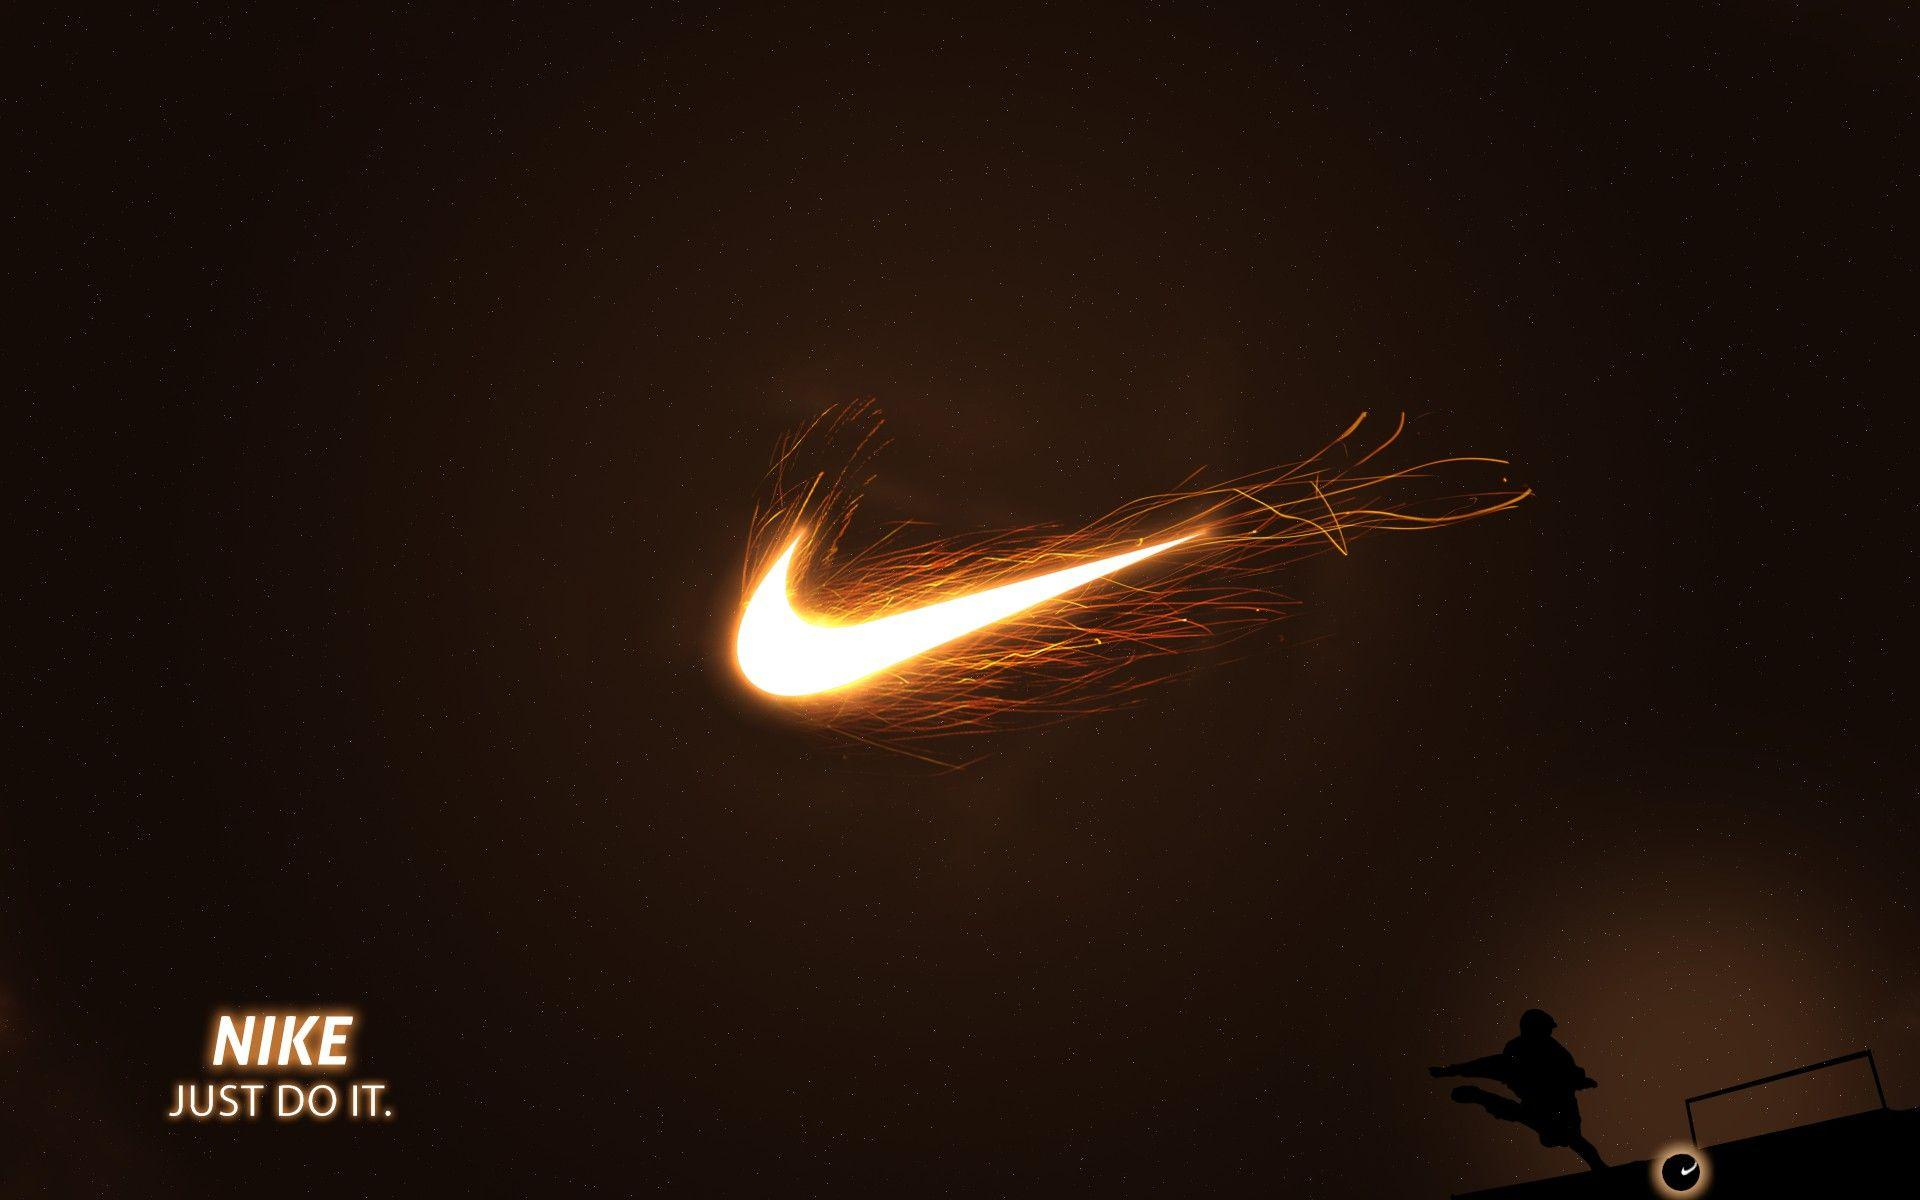 just do it nike wallpapers wallpaper cave